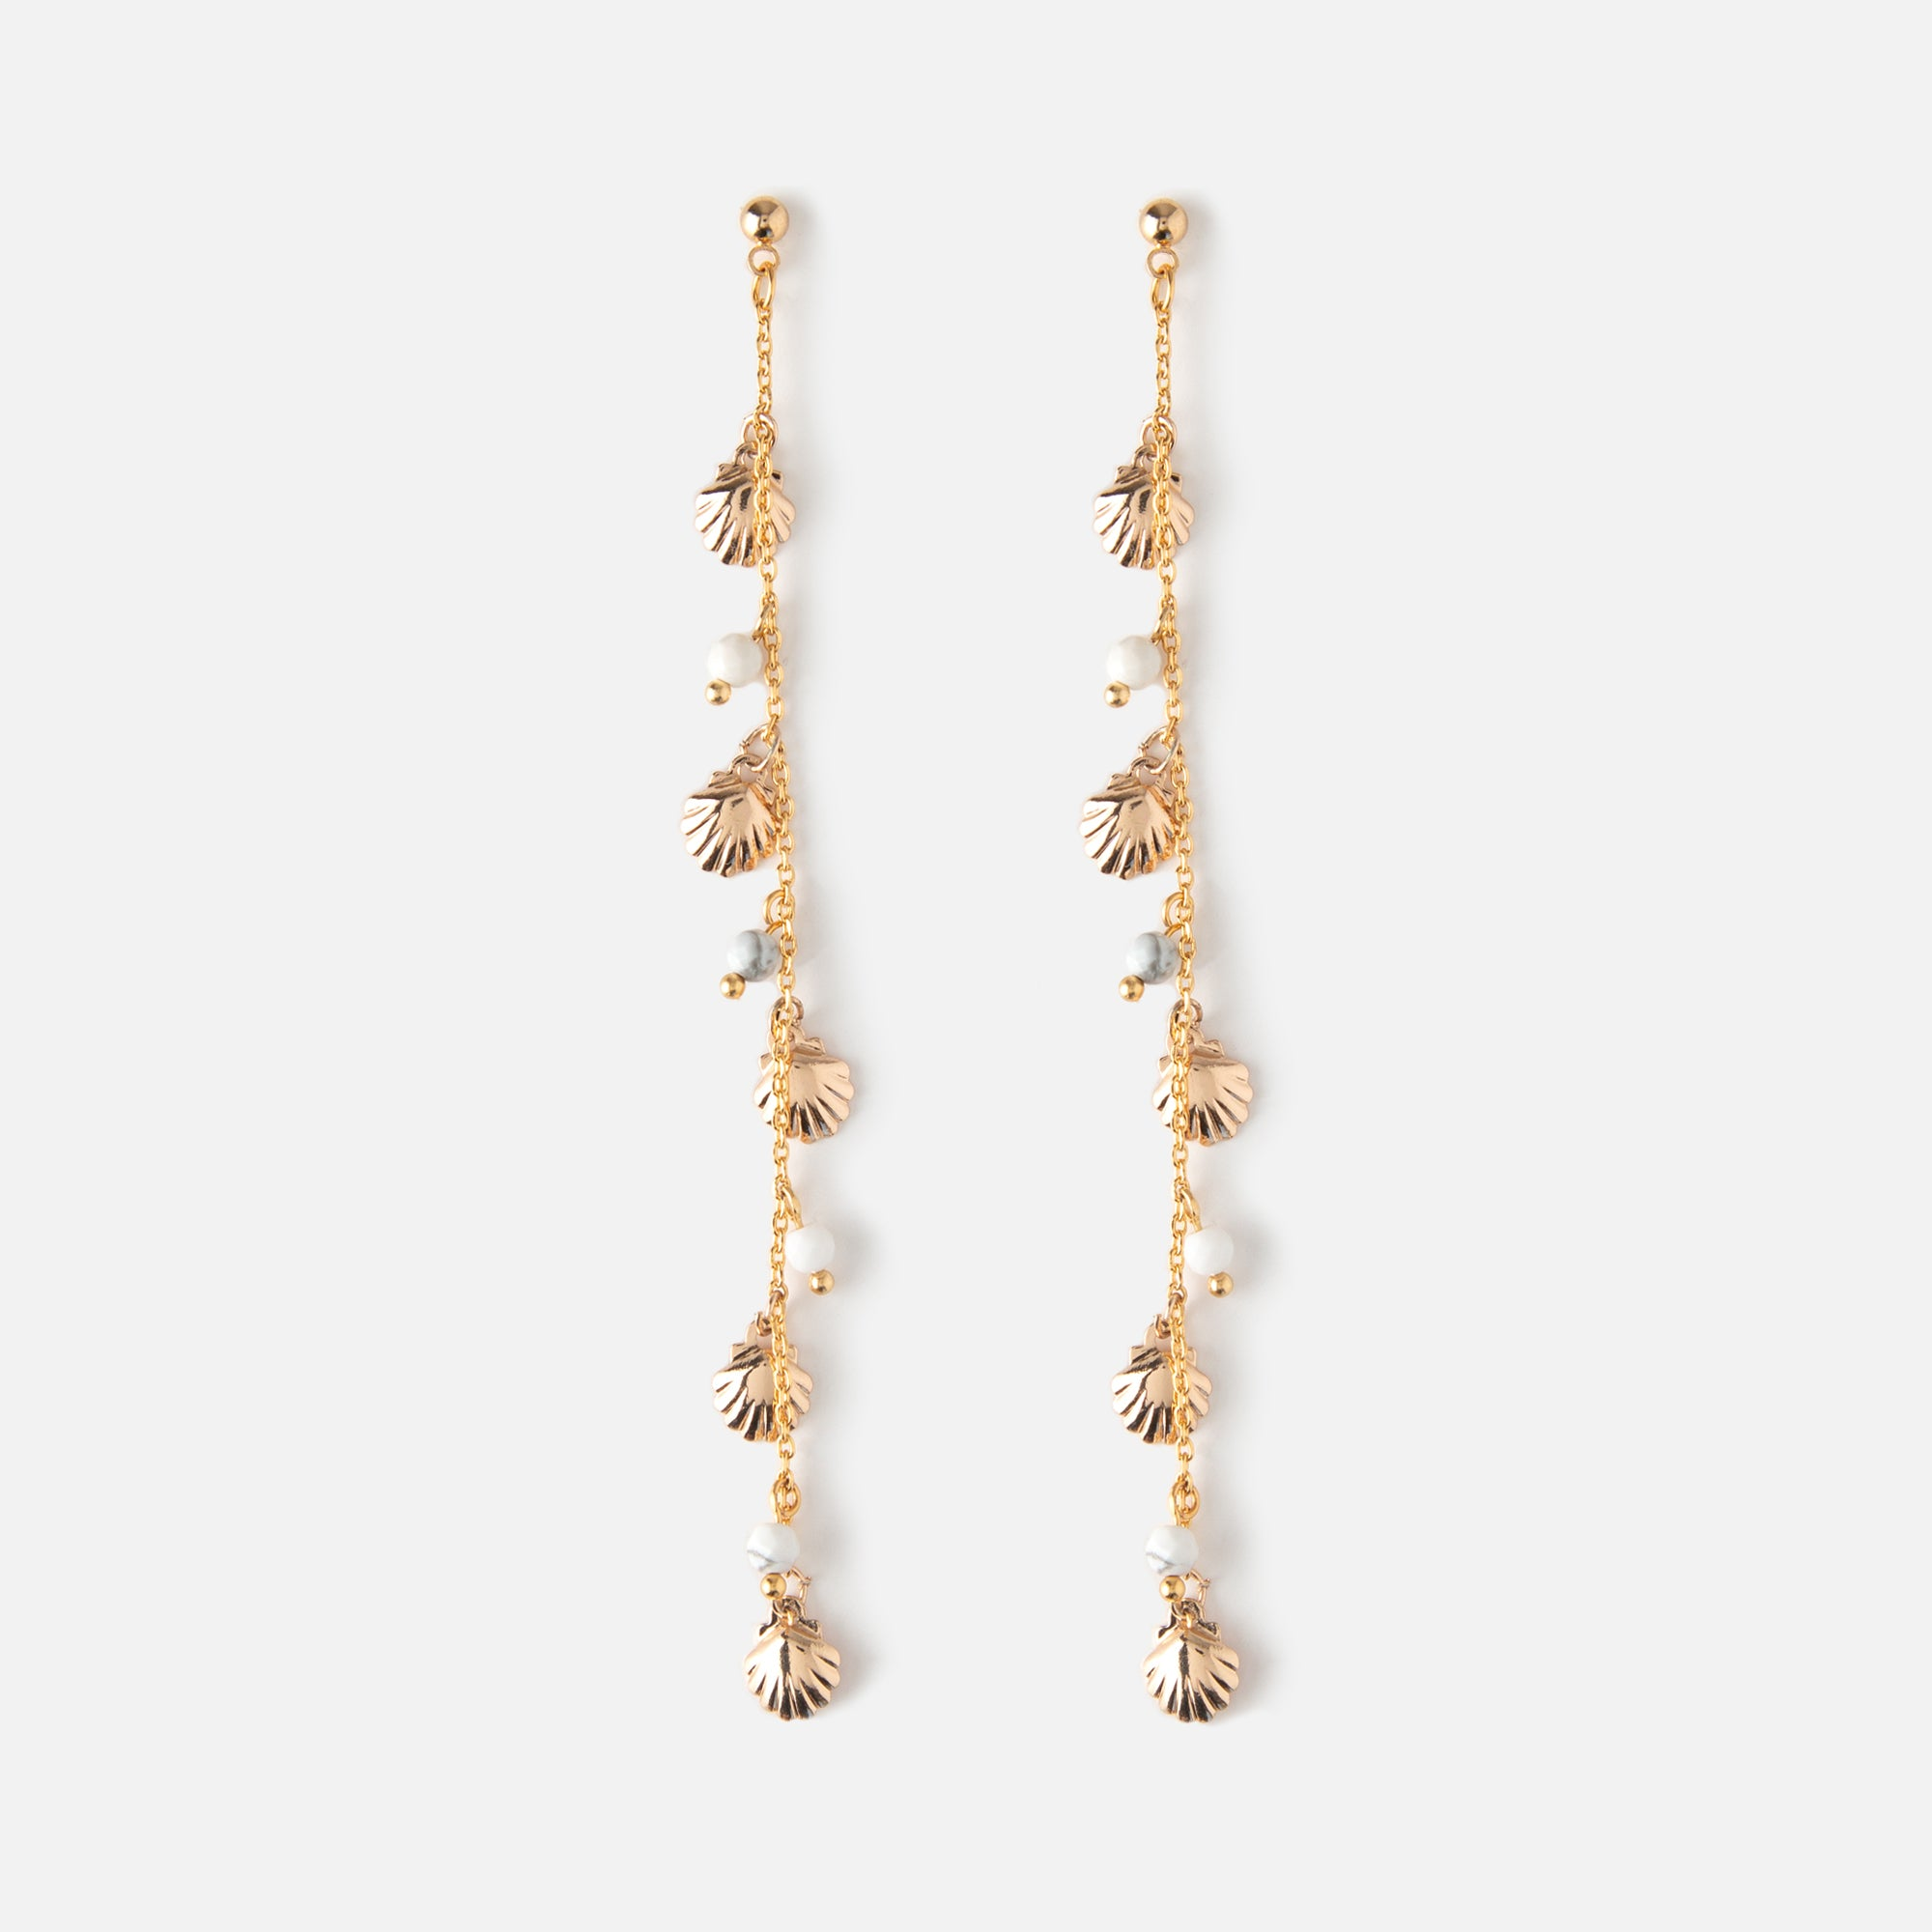 Shell & Bead Chain Drop Earrings